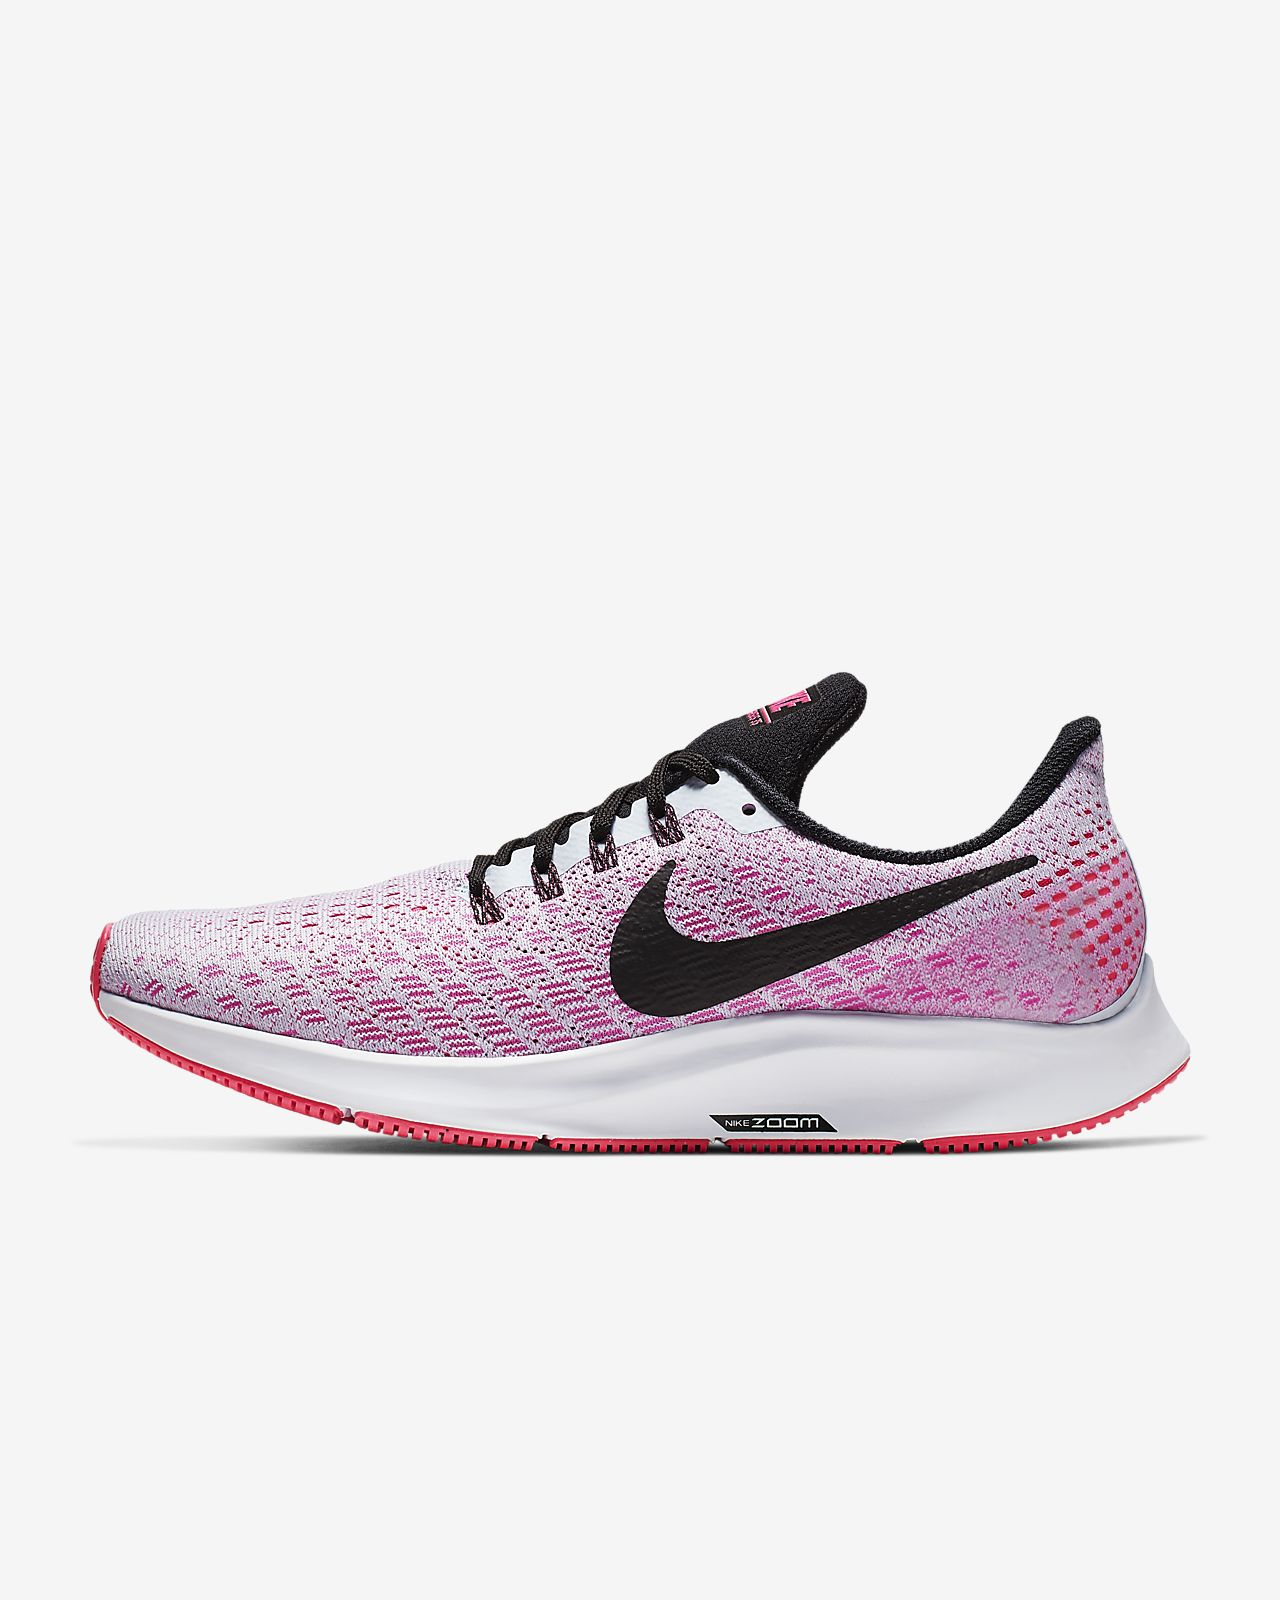 the best attitude 4aaa3 3d785 ... Nike Air Zoom Pegasus 35 Women s Running Shoe